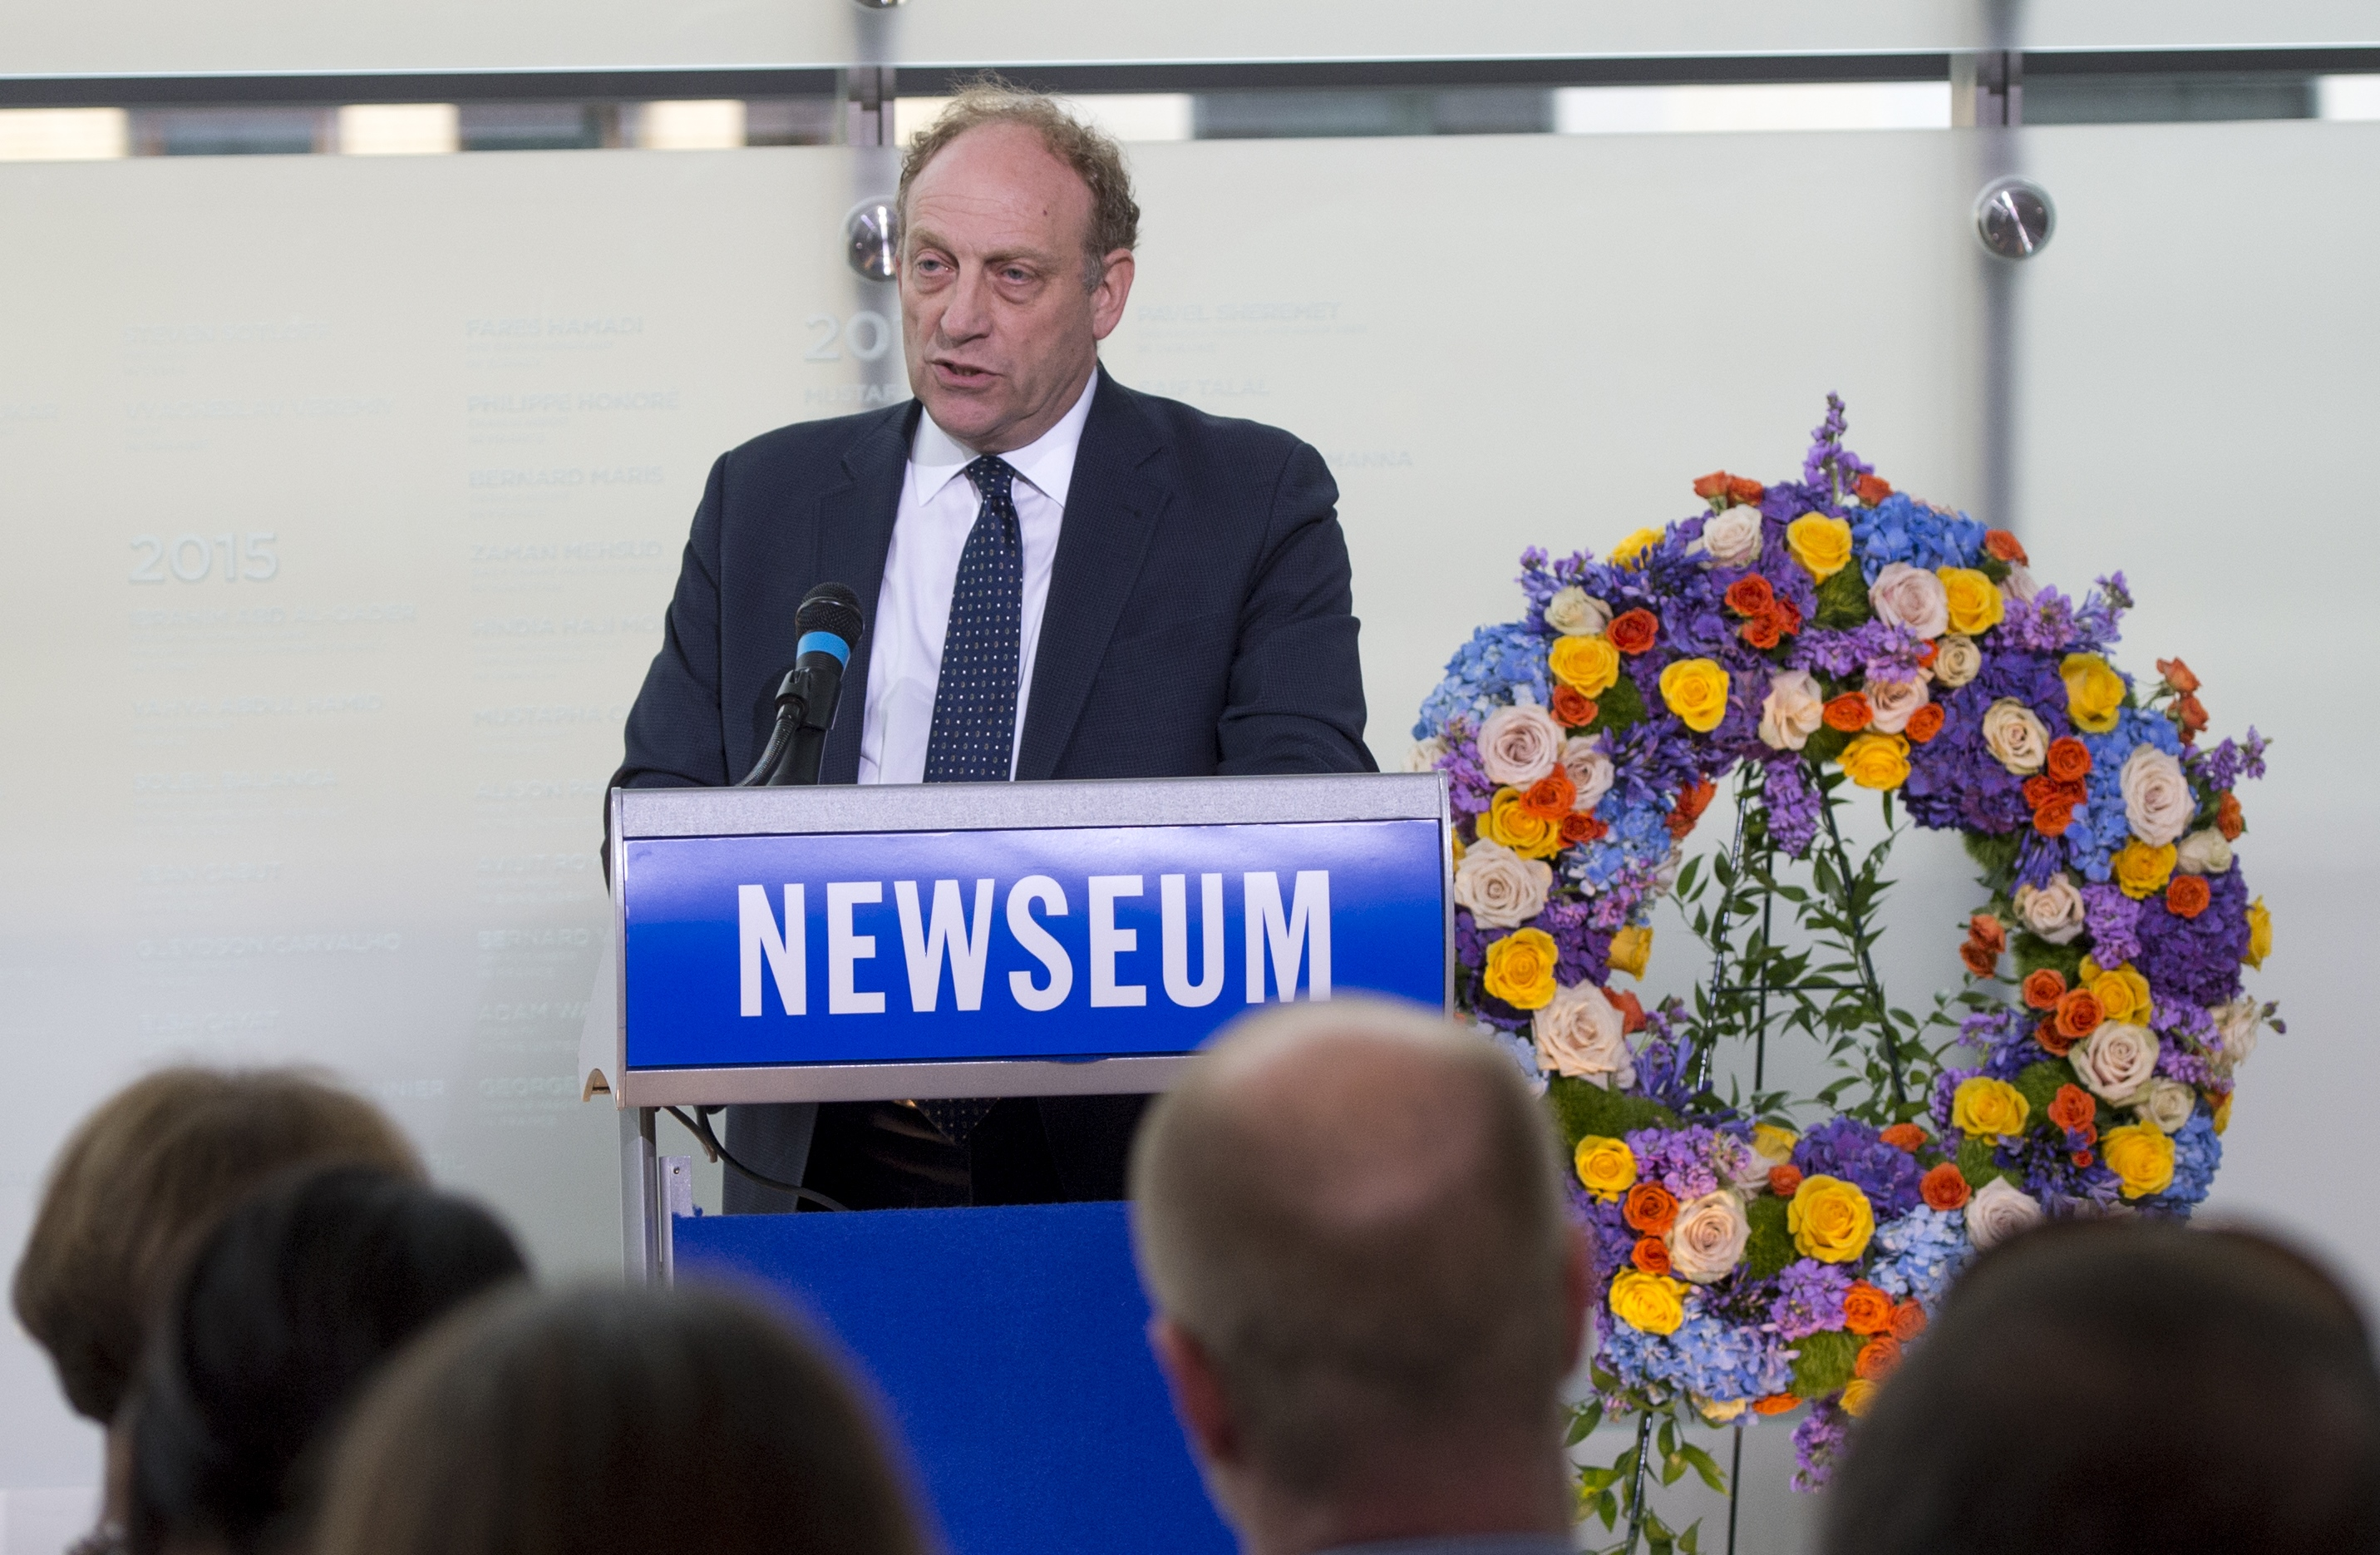 Michael Oreskes, senior vice president of news and editorial director of National Public Radio (NPR), speaks during the rededication of the Journalists Memorial at the Newseum in Washington, DC, June 5, 2017, as the names of 14 journalists who died or were killed while reporting the news in 2016 are added to the memorial. / AFP PHOTO / SAUL LOEB (Photo credit should read SAUL LOEB/AFP/Getty Images)